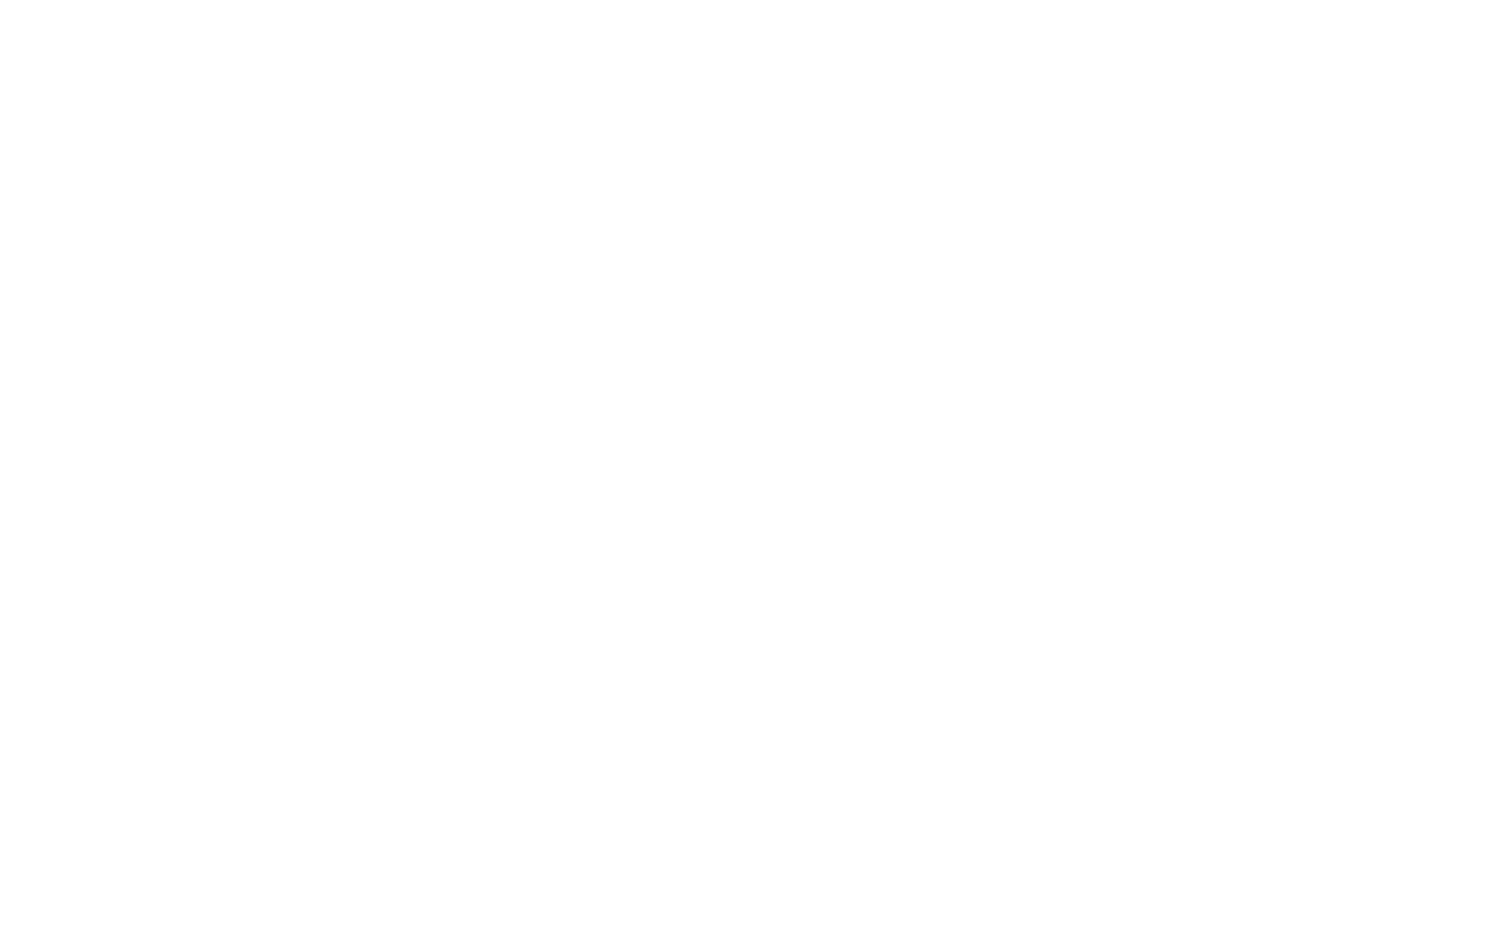 Hidden Hills Farm & Saddle Club